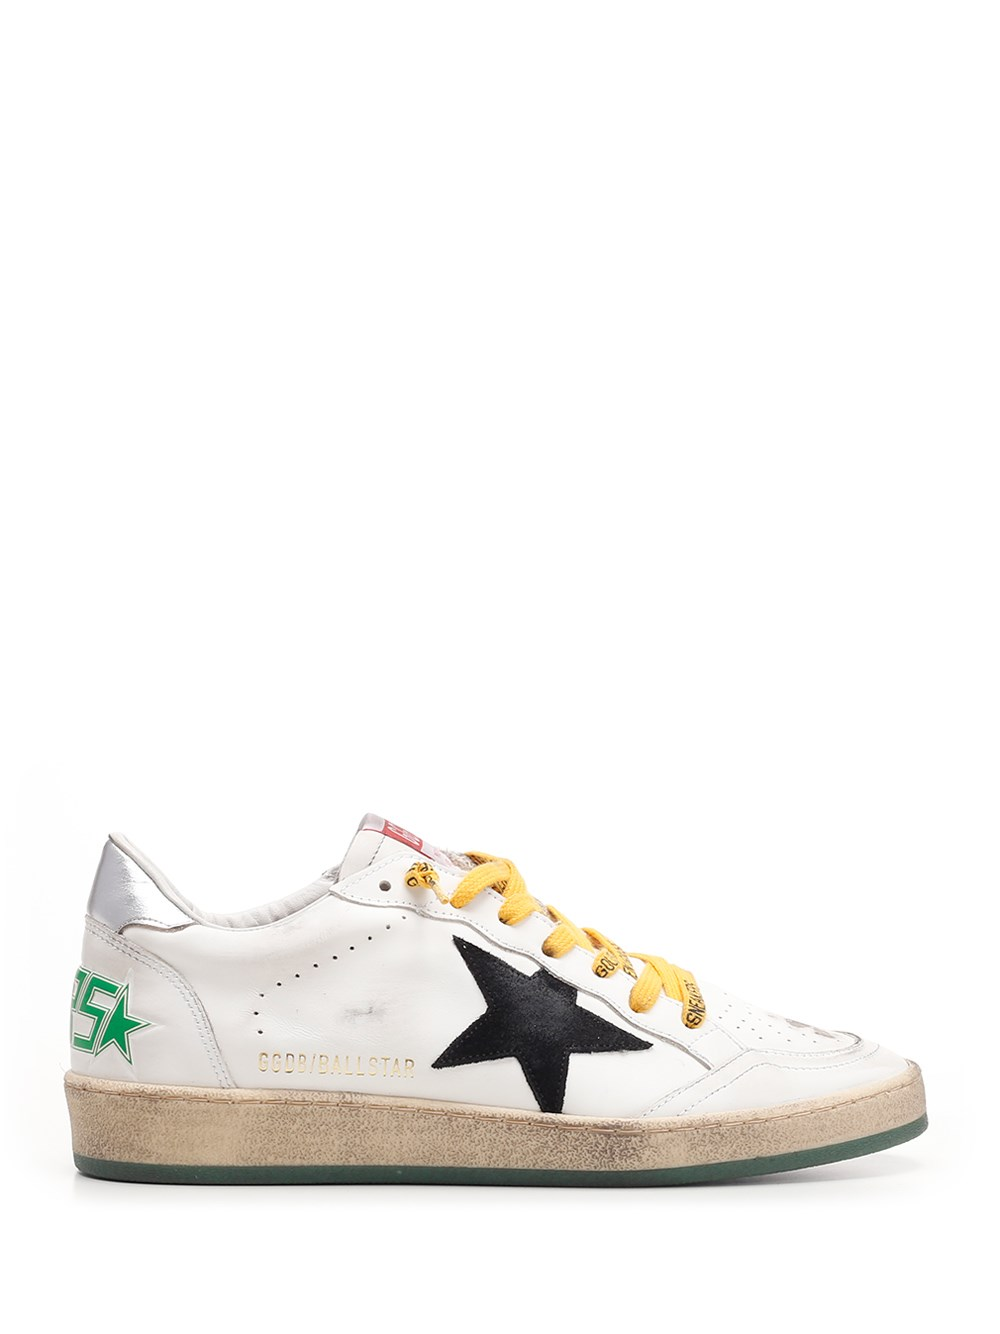 "GOLDEN GOOSE DELUXE BRAND ""Ball Star"" Sneakers With Signature Laces"